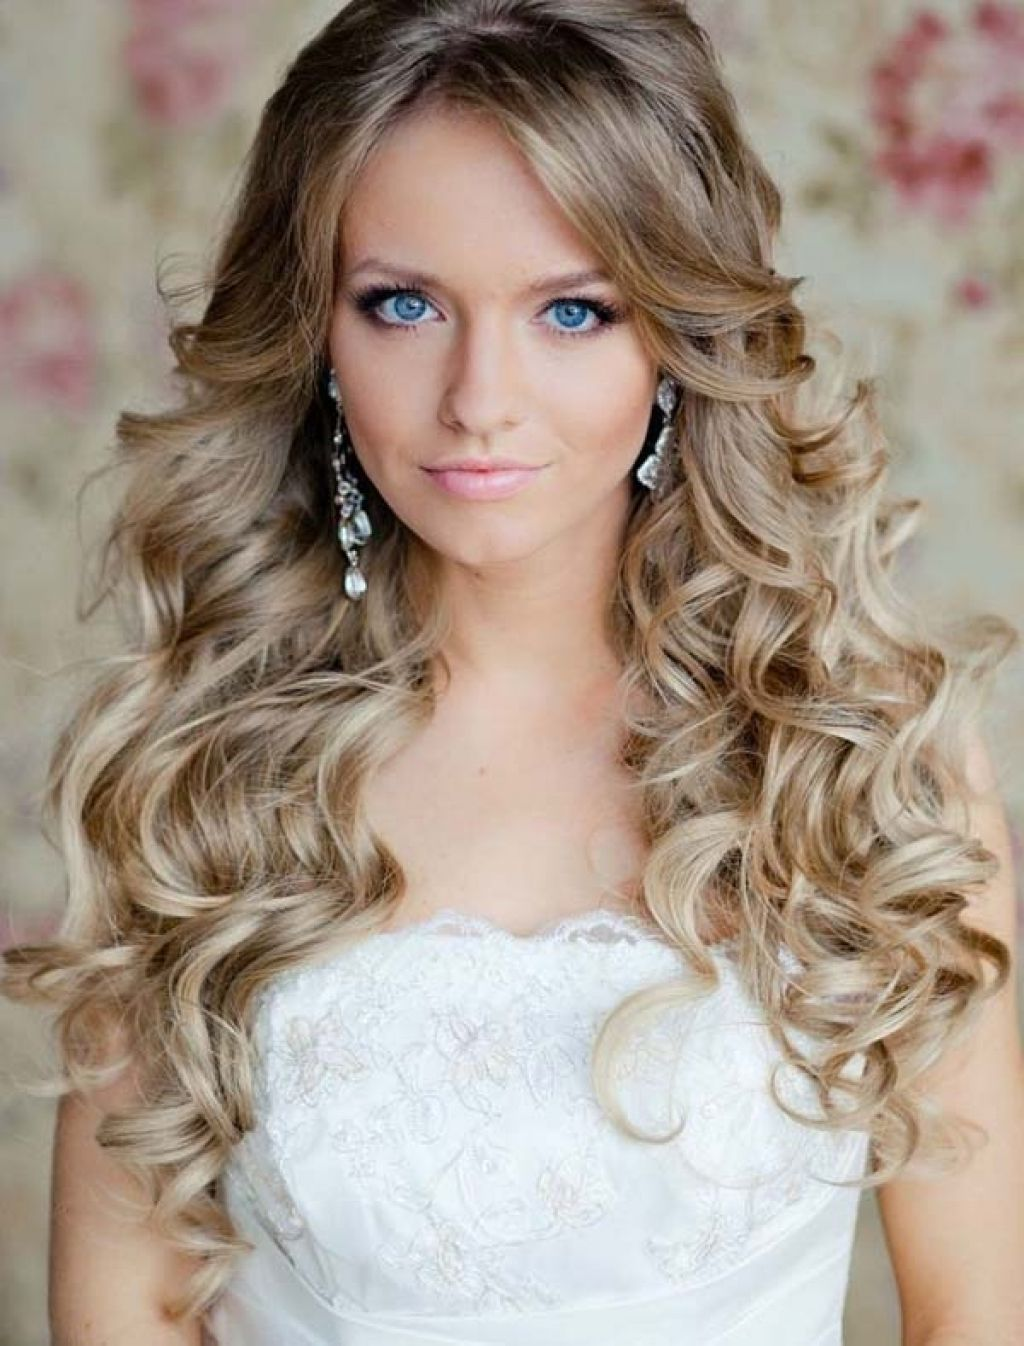 Best Hairstyles For Long Hair For Wedding Party 5 Istalo Long Hairstyles For Wedding Party Gaya Rambut Pengantin Model Rambut Pengantin Rambut Keriting